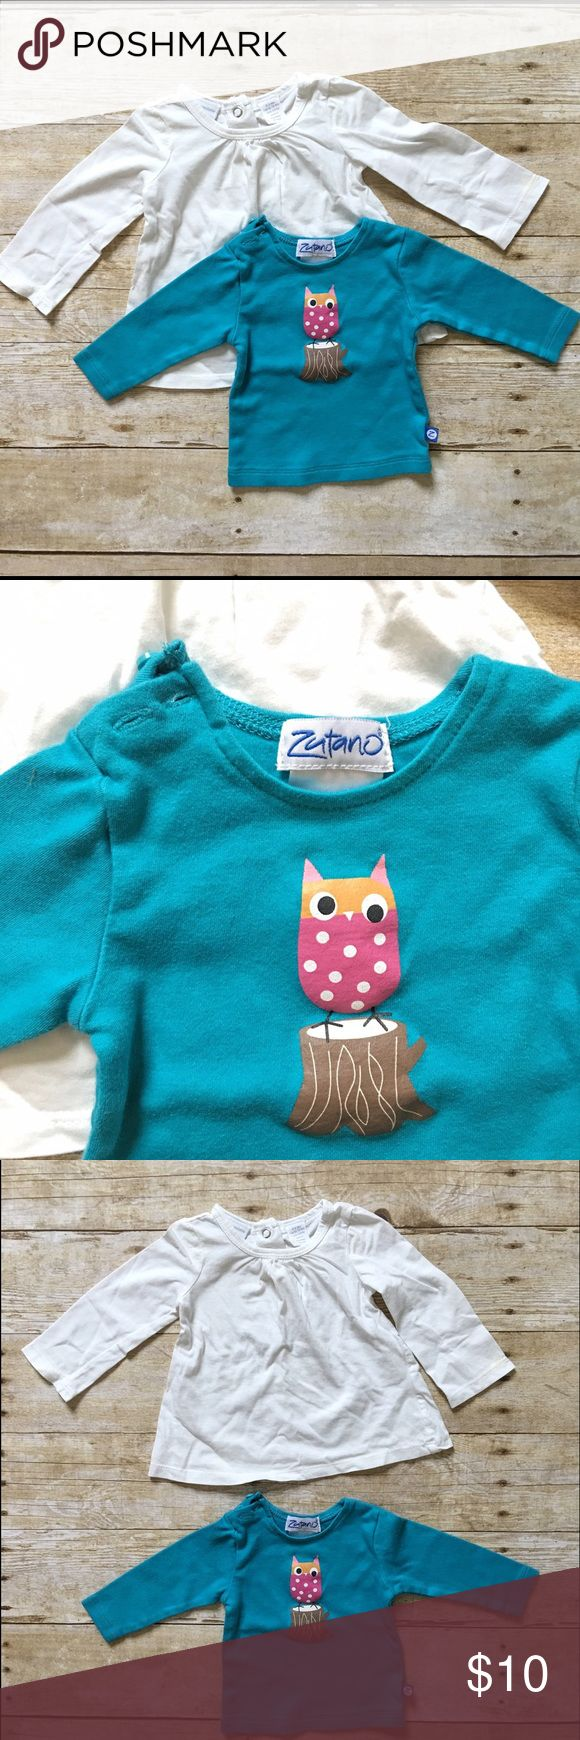 ZUTANO Owl Tee and White Tee Set Cute long sleeve tees to pair with jeans, skirts, leggings! Zutano Shirts & Tops Tees - Long Sleeve